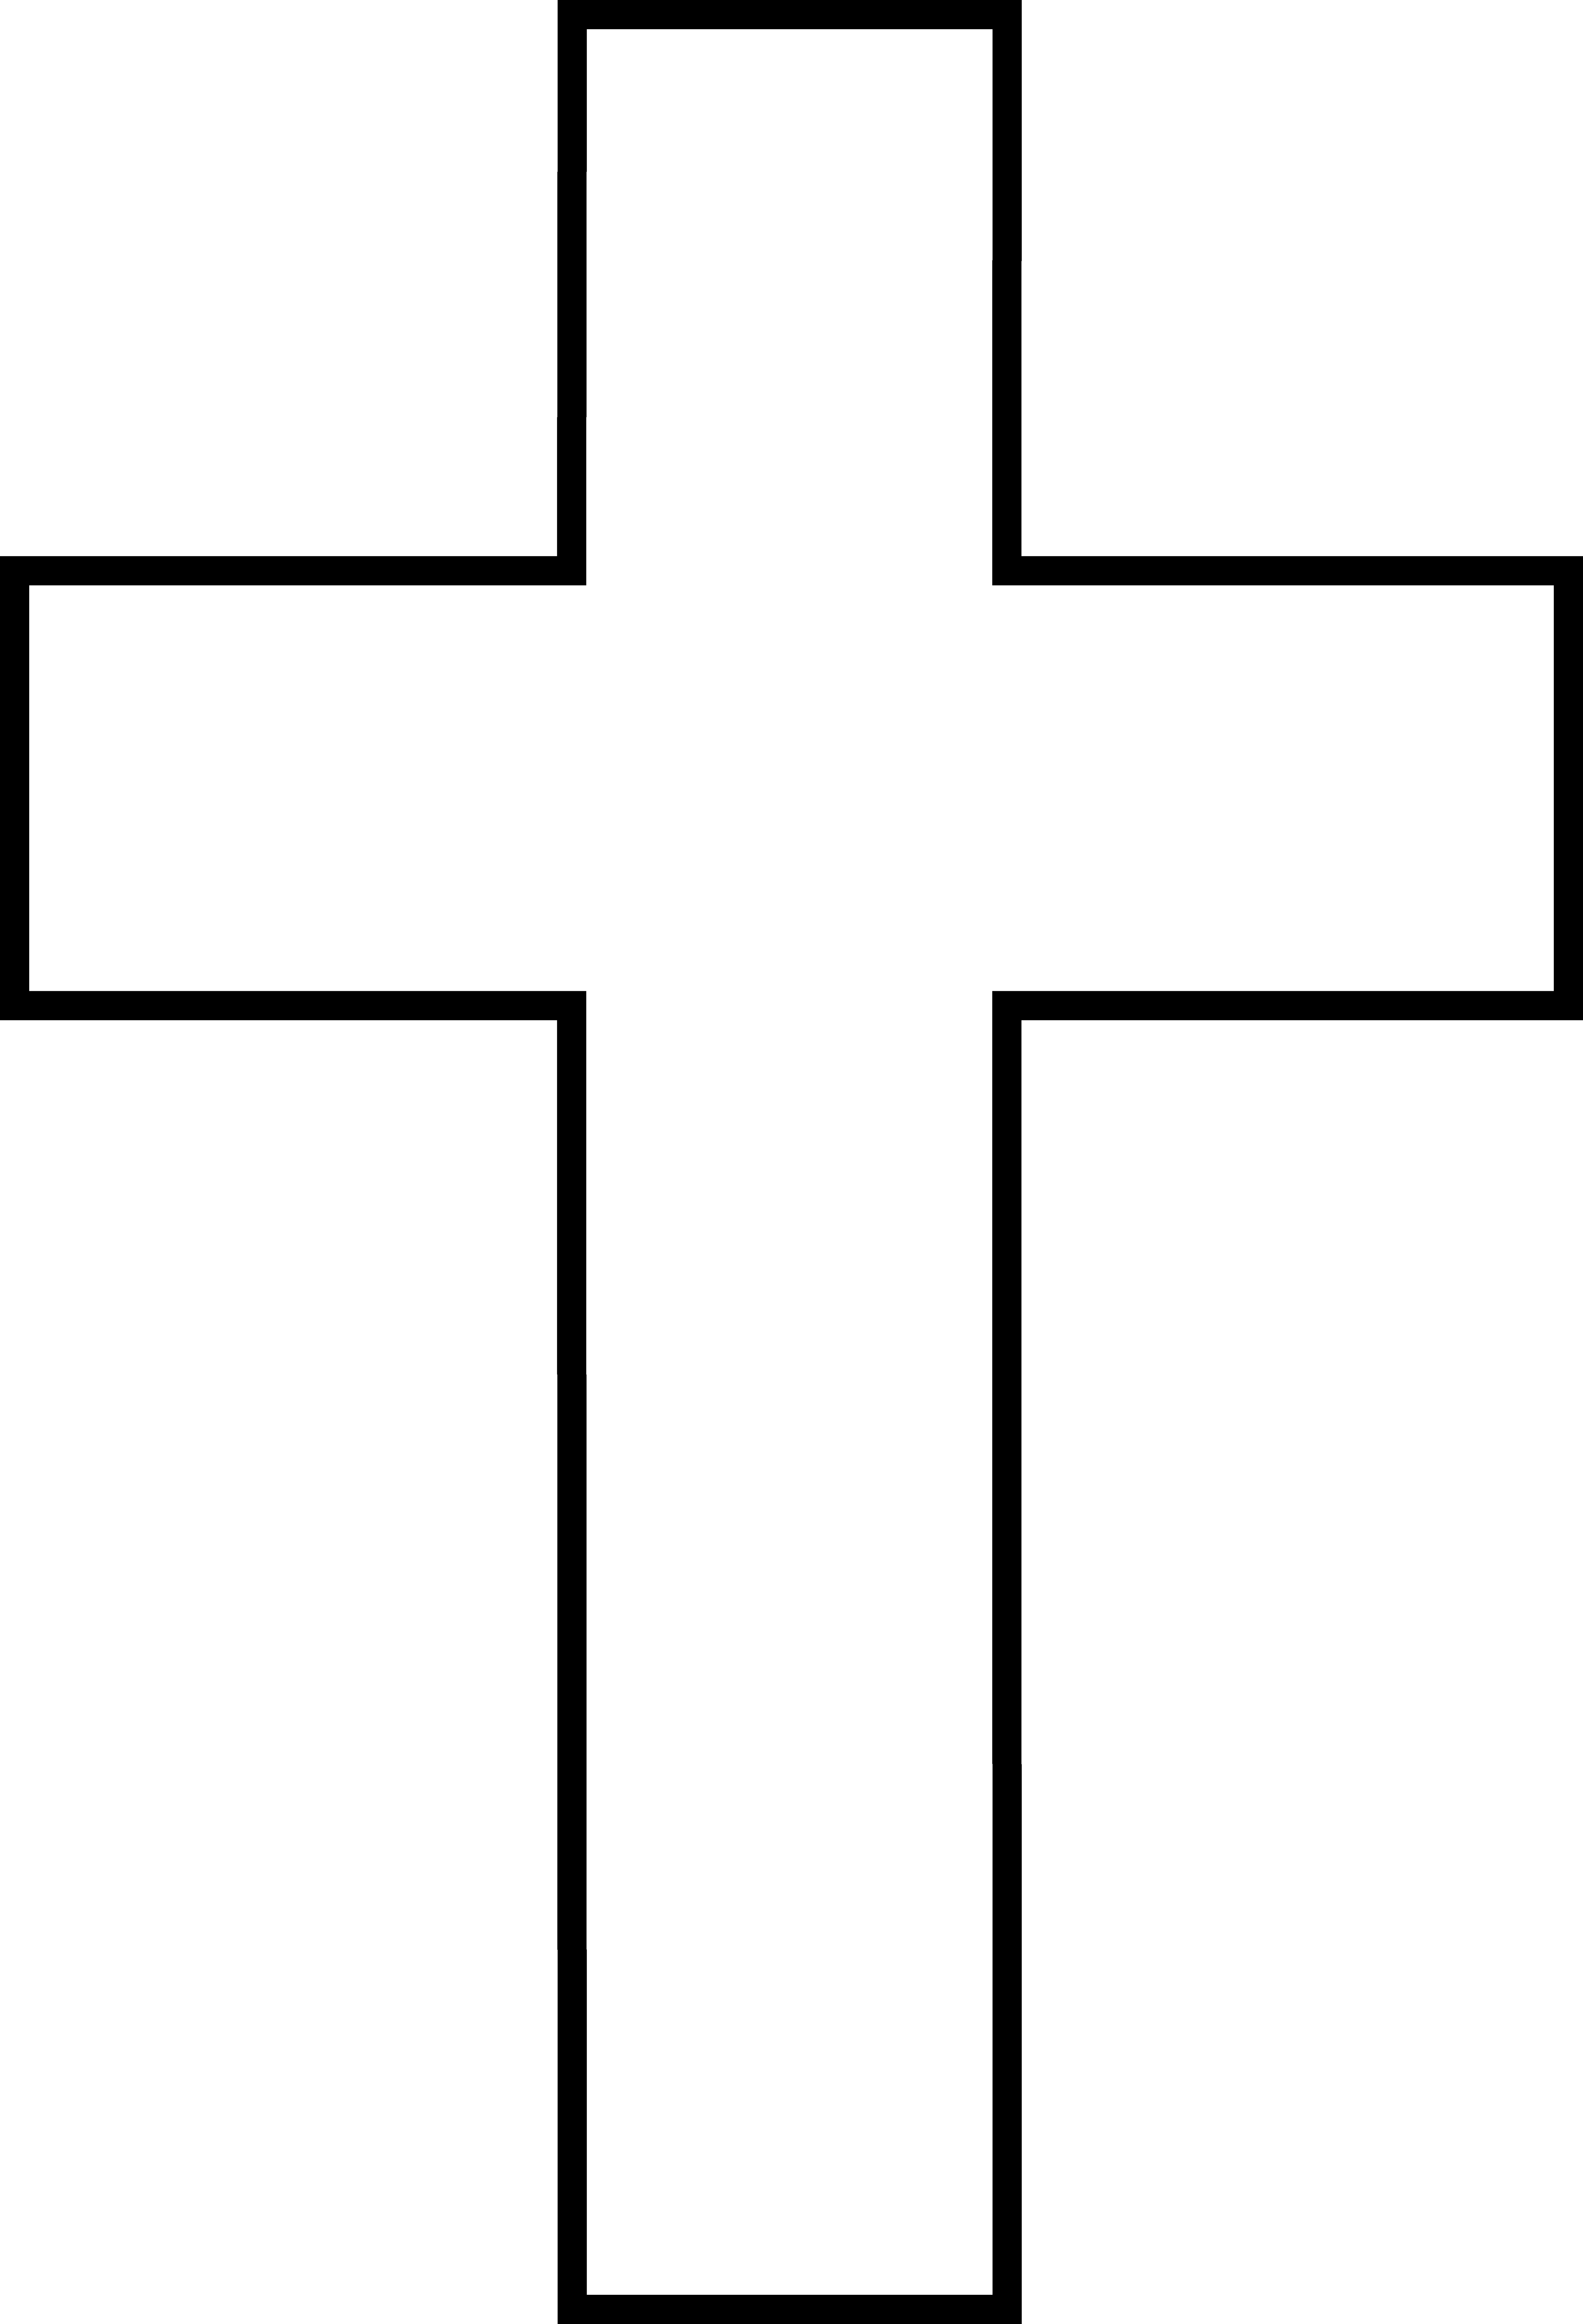 free cross clipart black and .-free cross clipart black and .-1